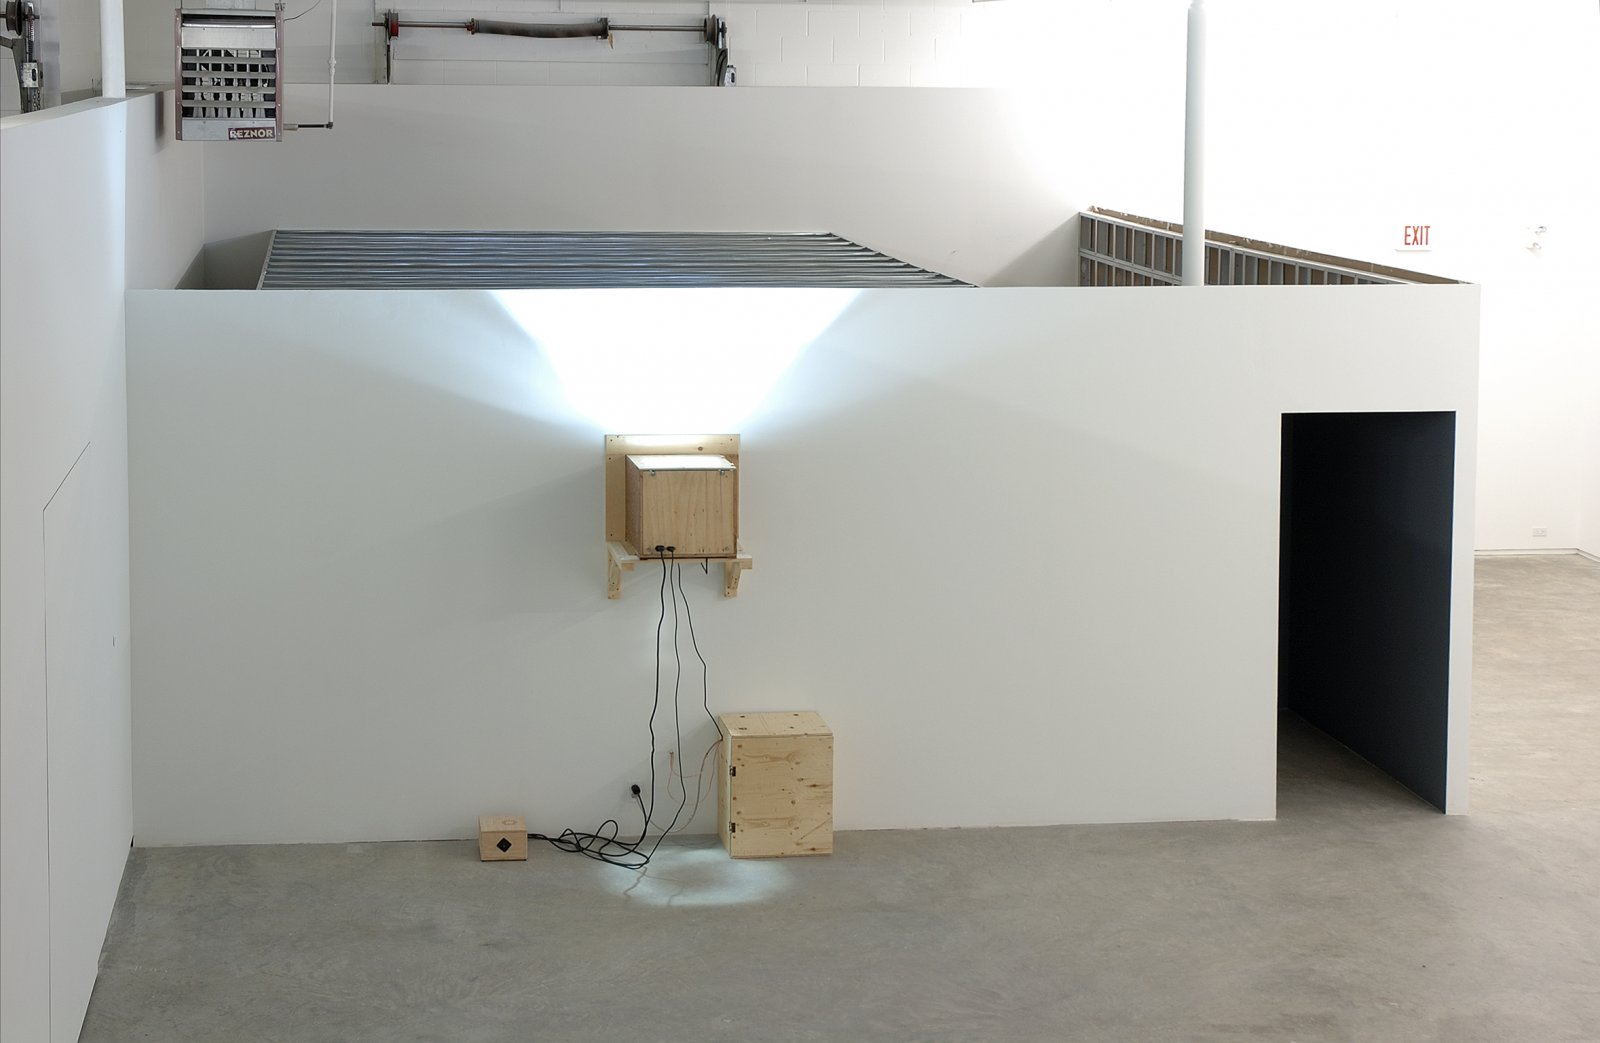 Kevin Schmidt, Sad Wolf, 2006, DIY projection installation, 4 minutes, 11 seconds. Installation view, Catriona Jeffries, Vancouver, 2006 by Kevin Schmidt